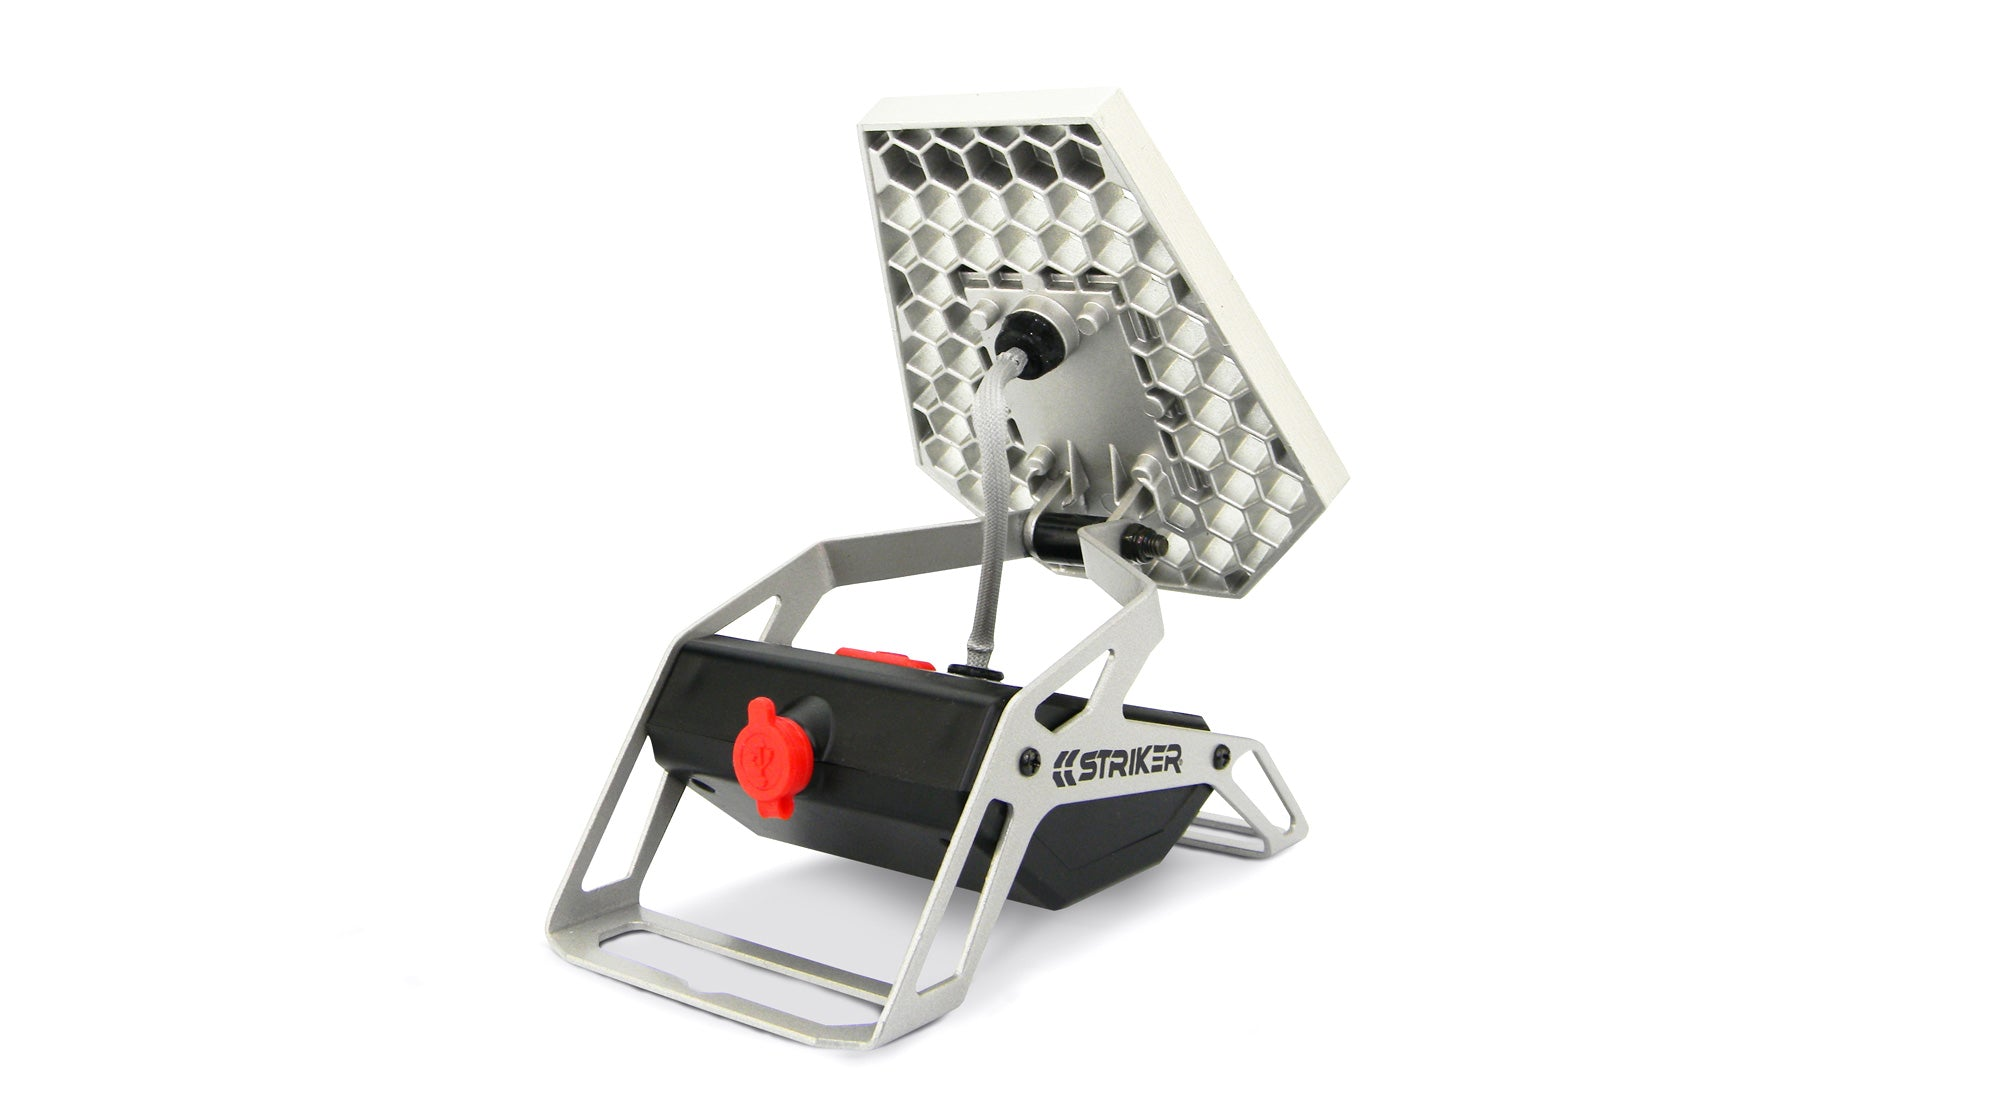 Striker ROVER Mobile Task Light back